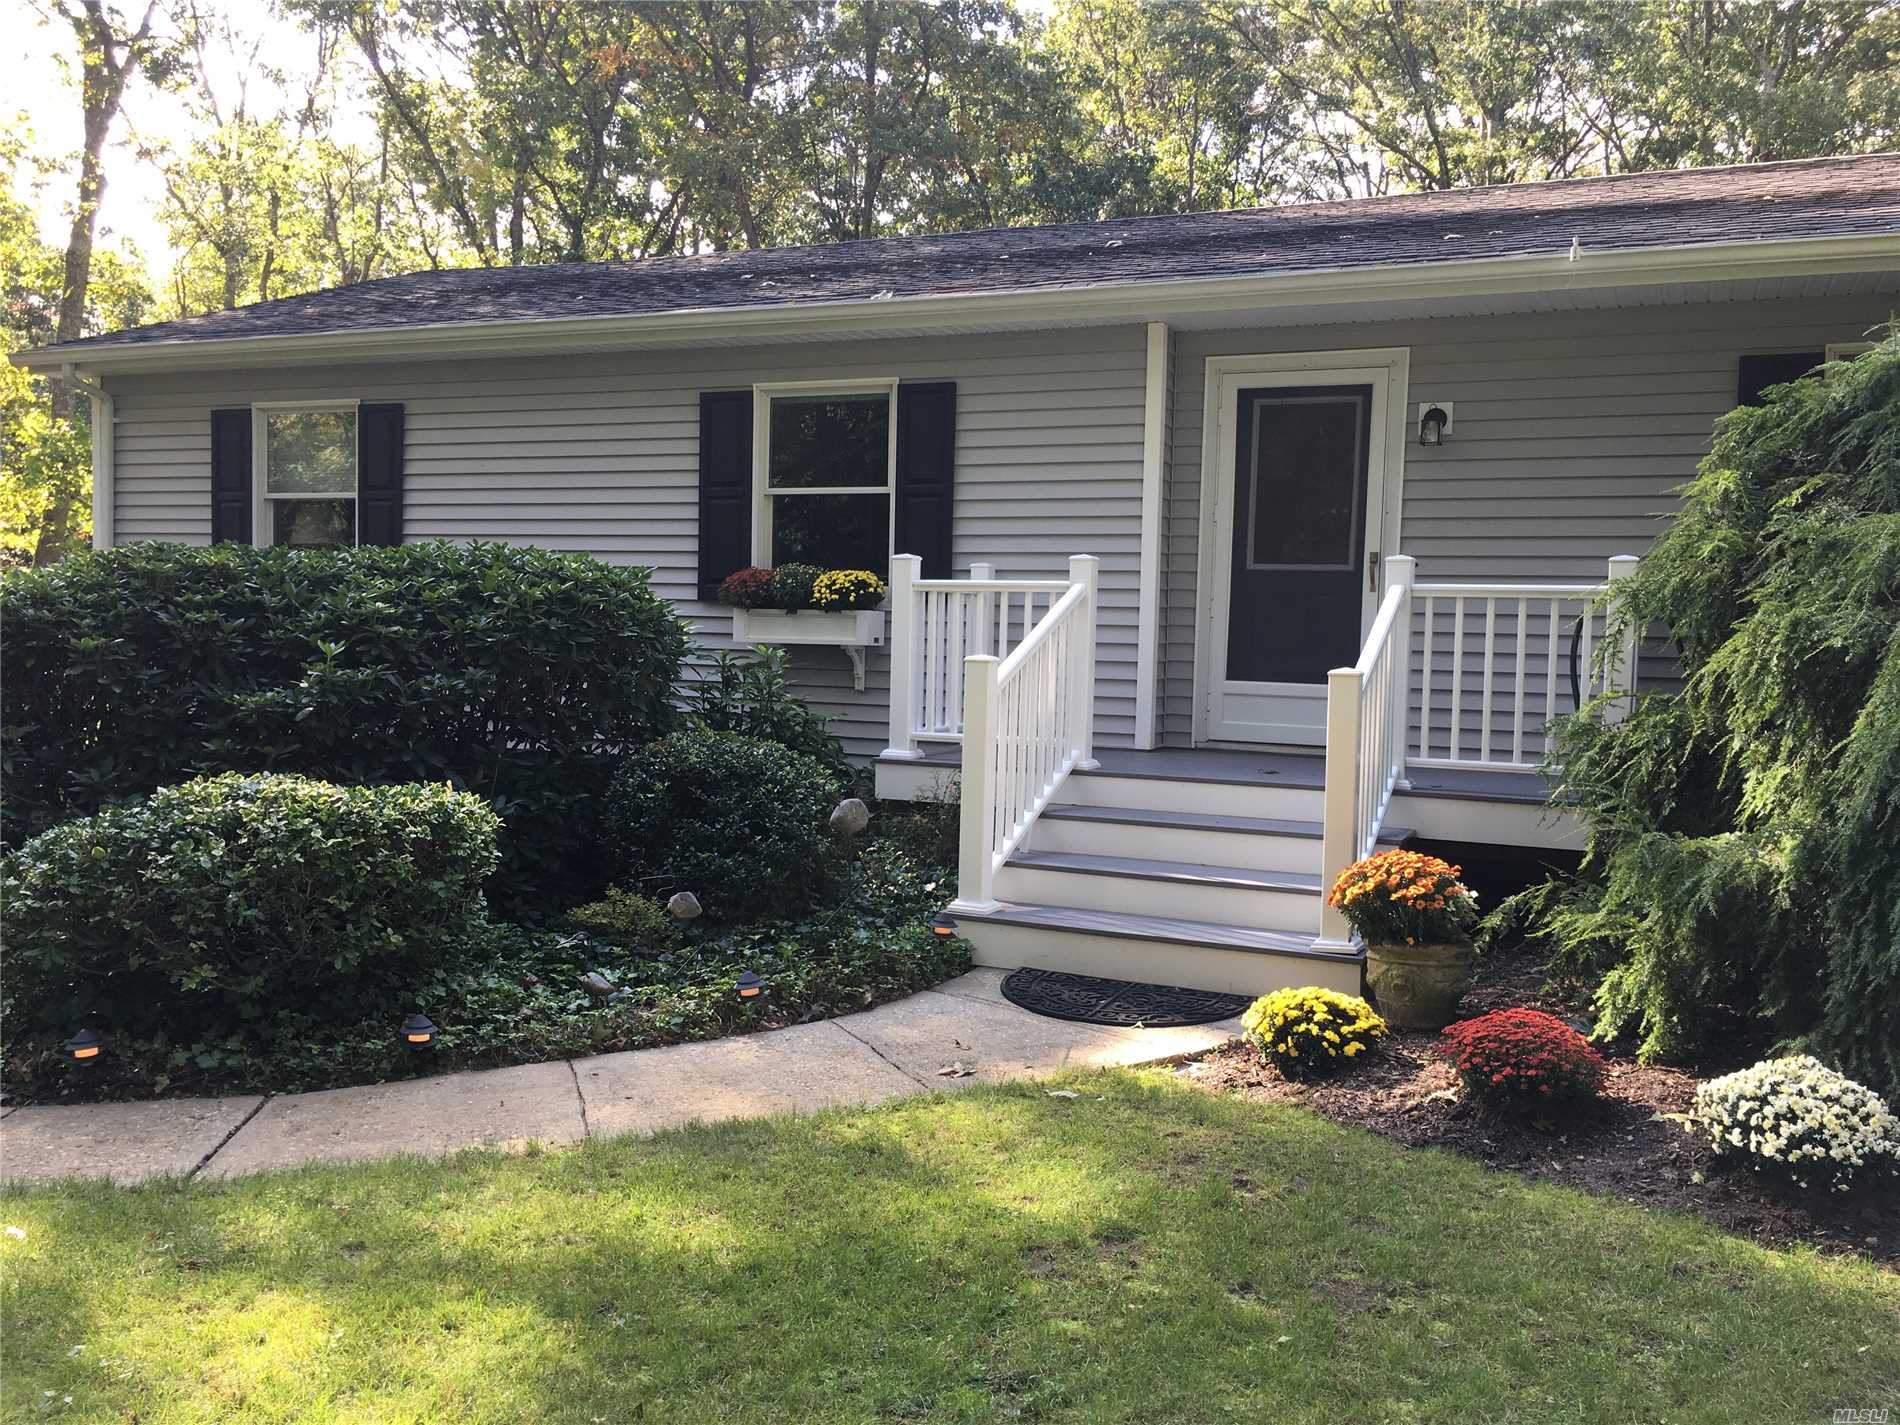 This 4 Bedrm 3 1/2 Bath Charmer In East Moriches Is A Must See! Pristine Move-In Ready Condition With Renovated Kitchen & Baths. Beautiful Wood Flooring, Gas Fireplace In Living Room, Wood Stove In Family Room, Deck, And 2 Car Garage. Beautifully Landscaped And Wooded On A Lovely Low Traffic Cul-De-Sac Street. The Property Backs Up To Mill Pond Creek, Launch Your Kayak Right From Your Yard!. East Moriches School Offers 3 High School Choices, Westhampton Bch, Eastport Manor, Or Center Moriches.